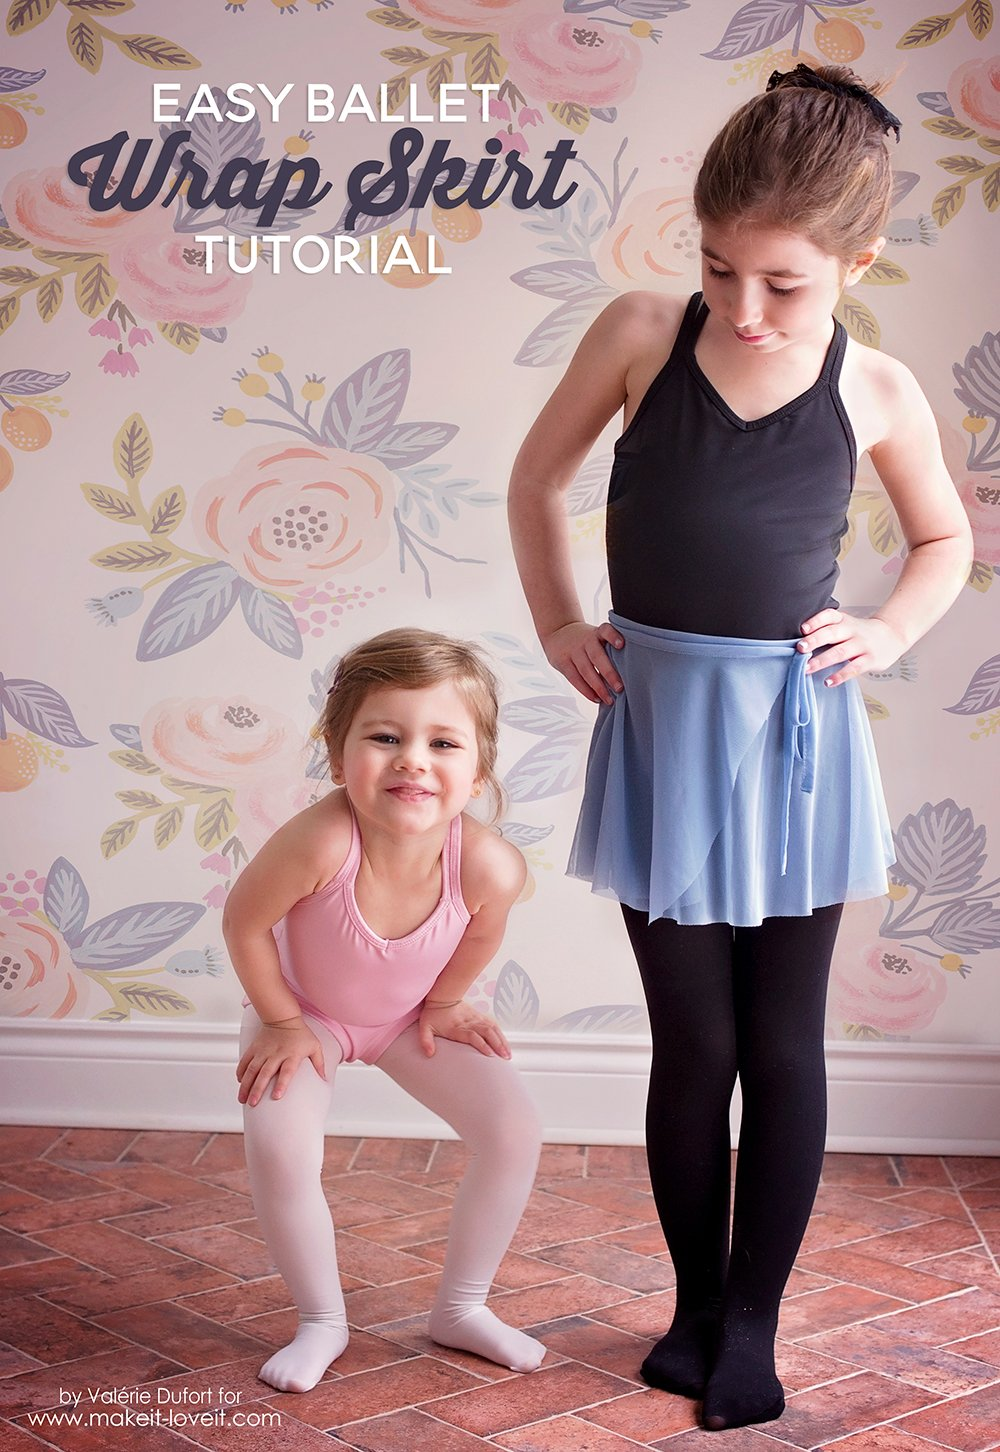 Easy Ballet Wrap Skirt Tutorial